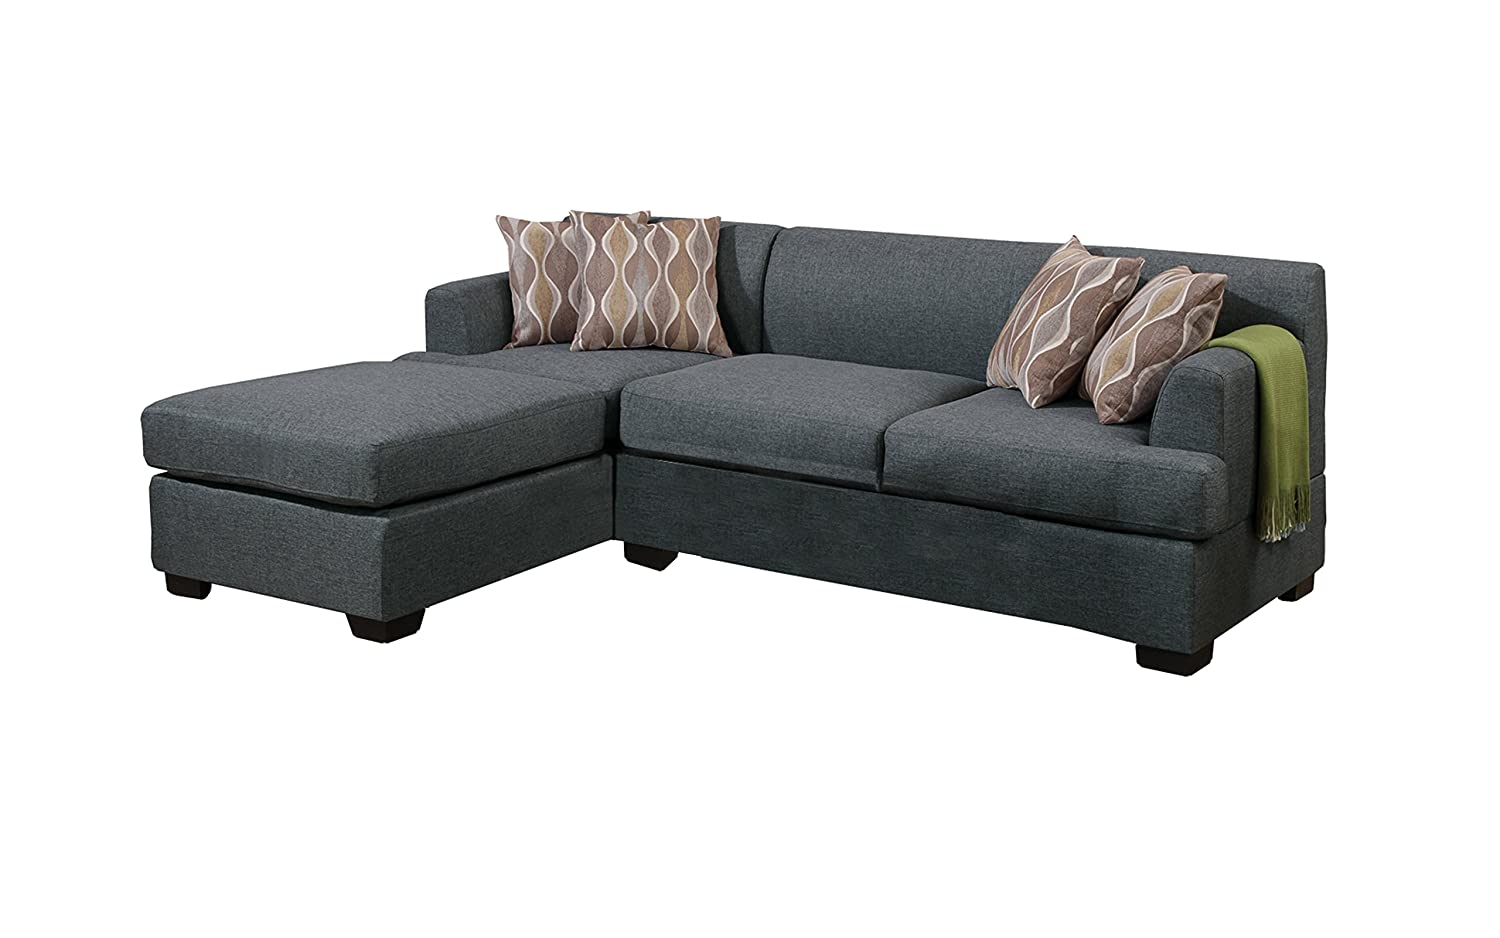 Poundex Bobkona Winfred Blended Linen 2-Piece 3-Seat Reversible Sectional Sofa - Blue Gray